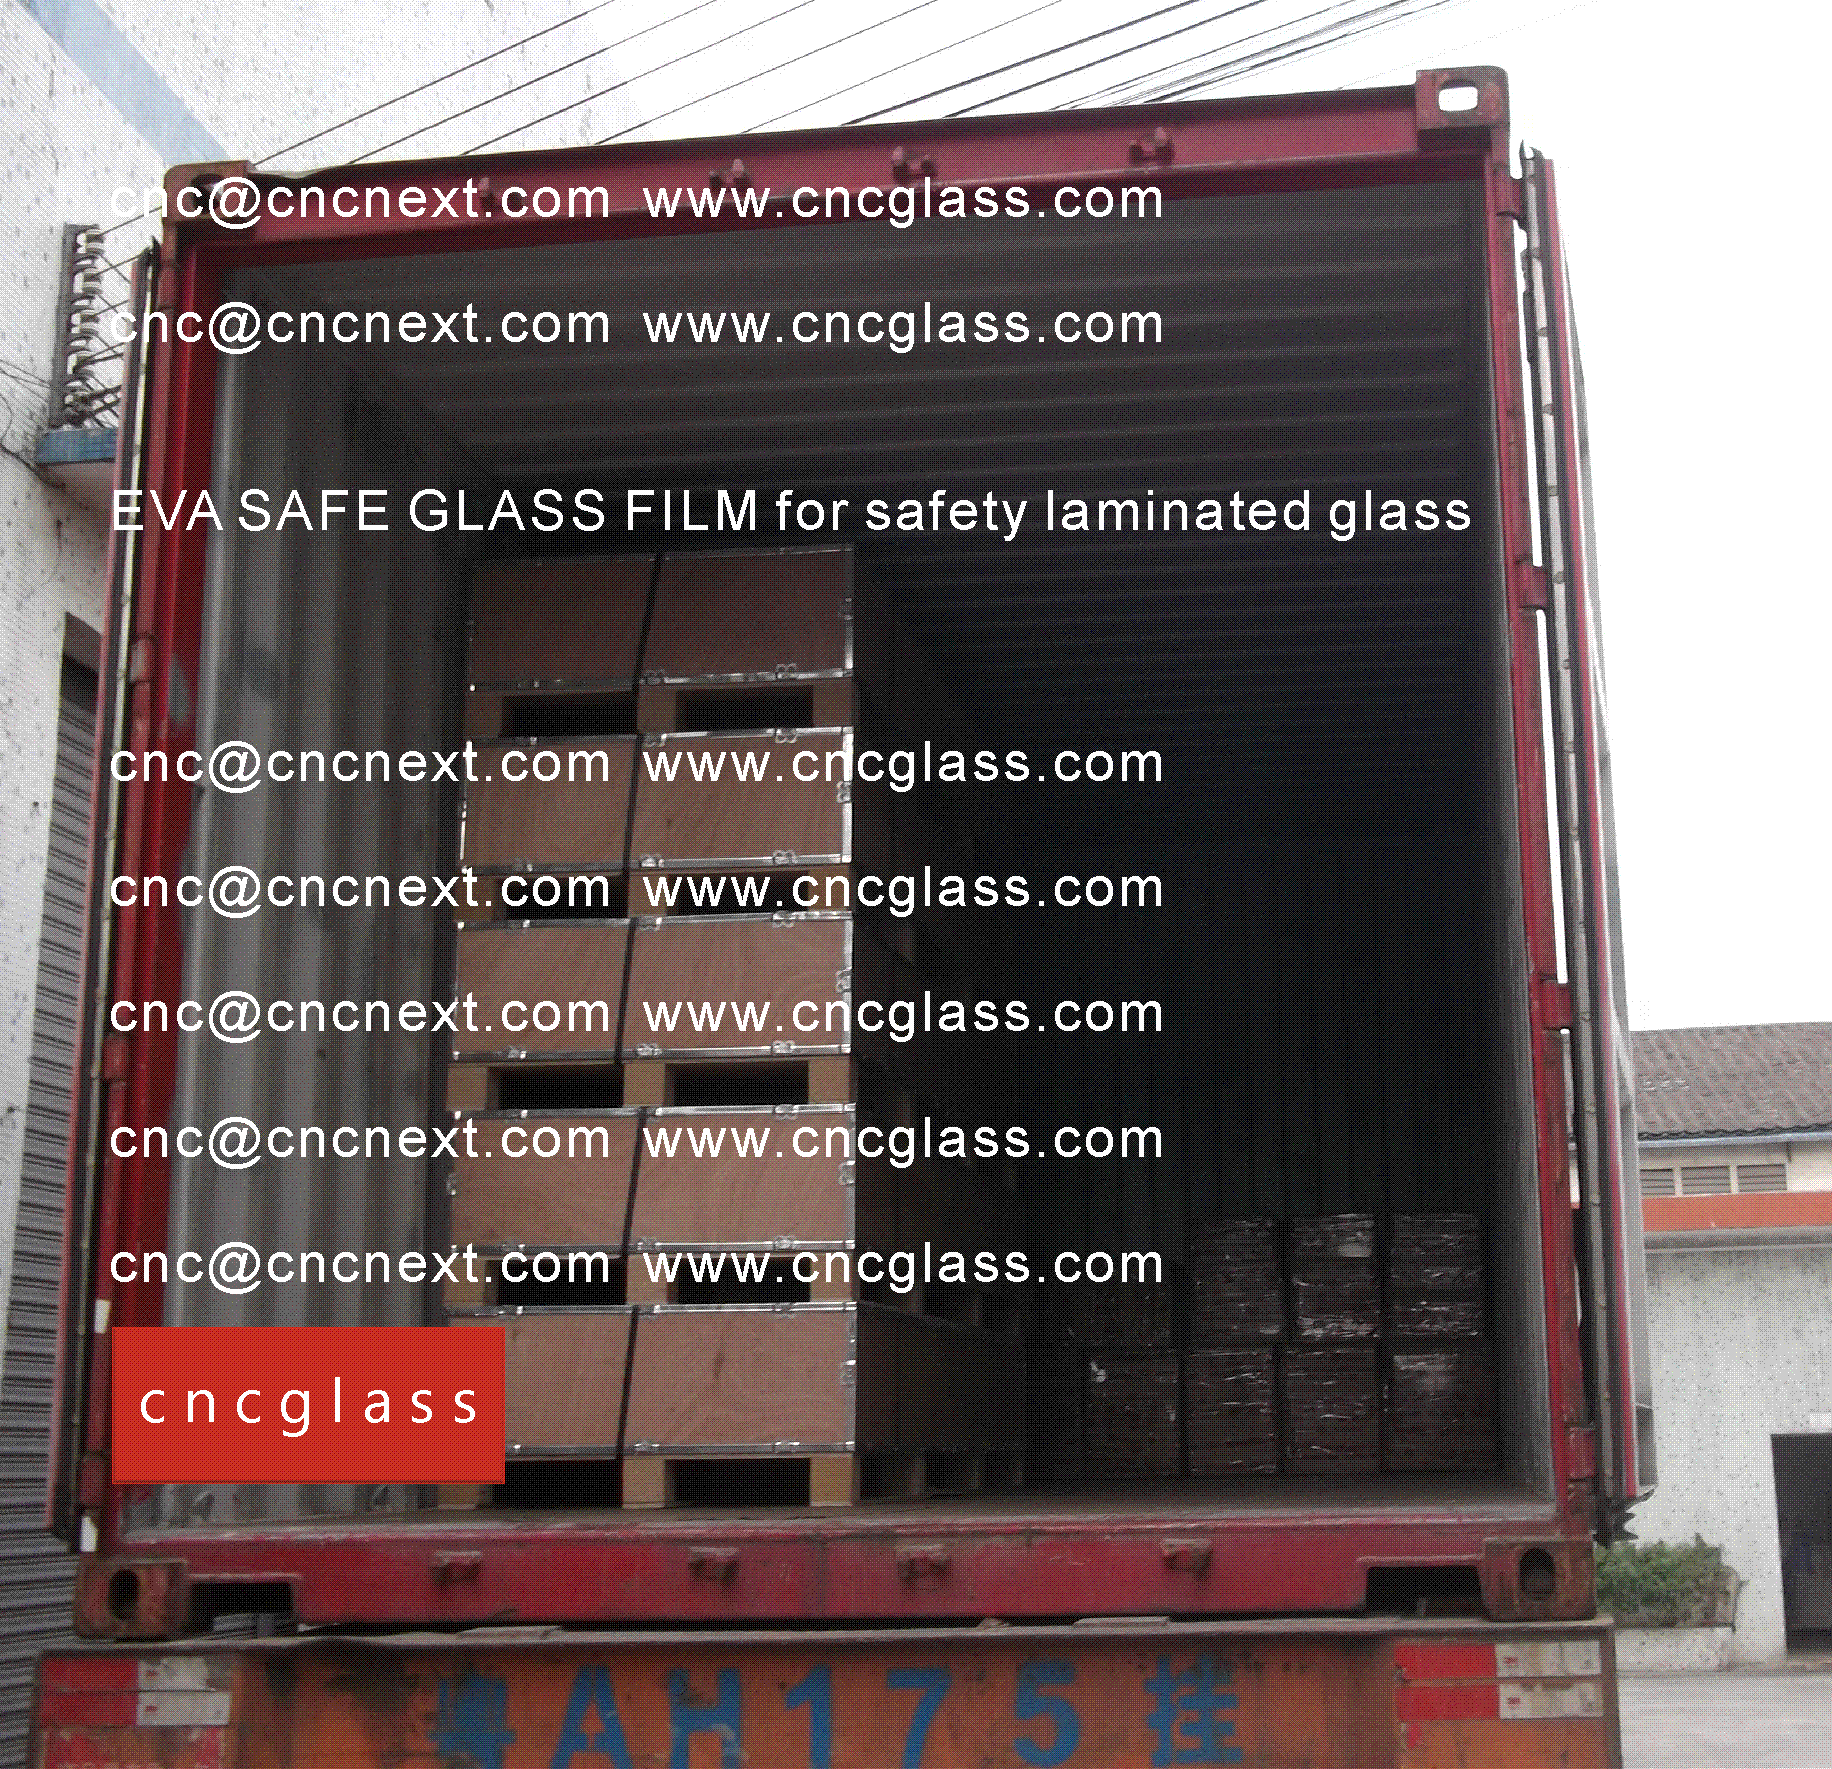 001 EVA SAFE GLASS FILM LOADING CONTAINER (SAFETY LAMINATED GLASS)